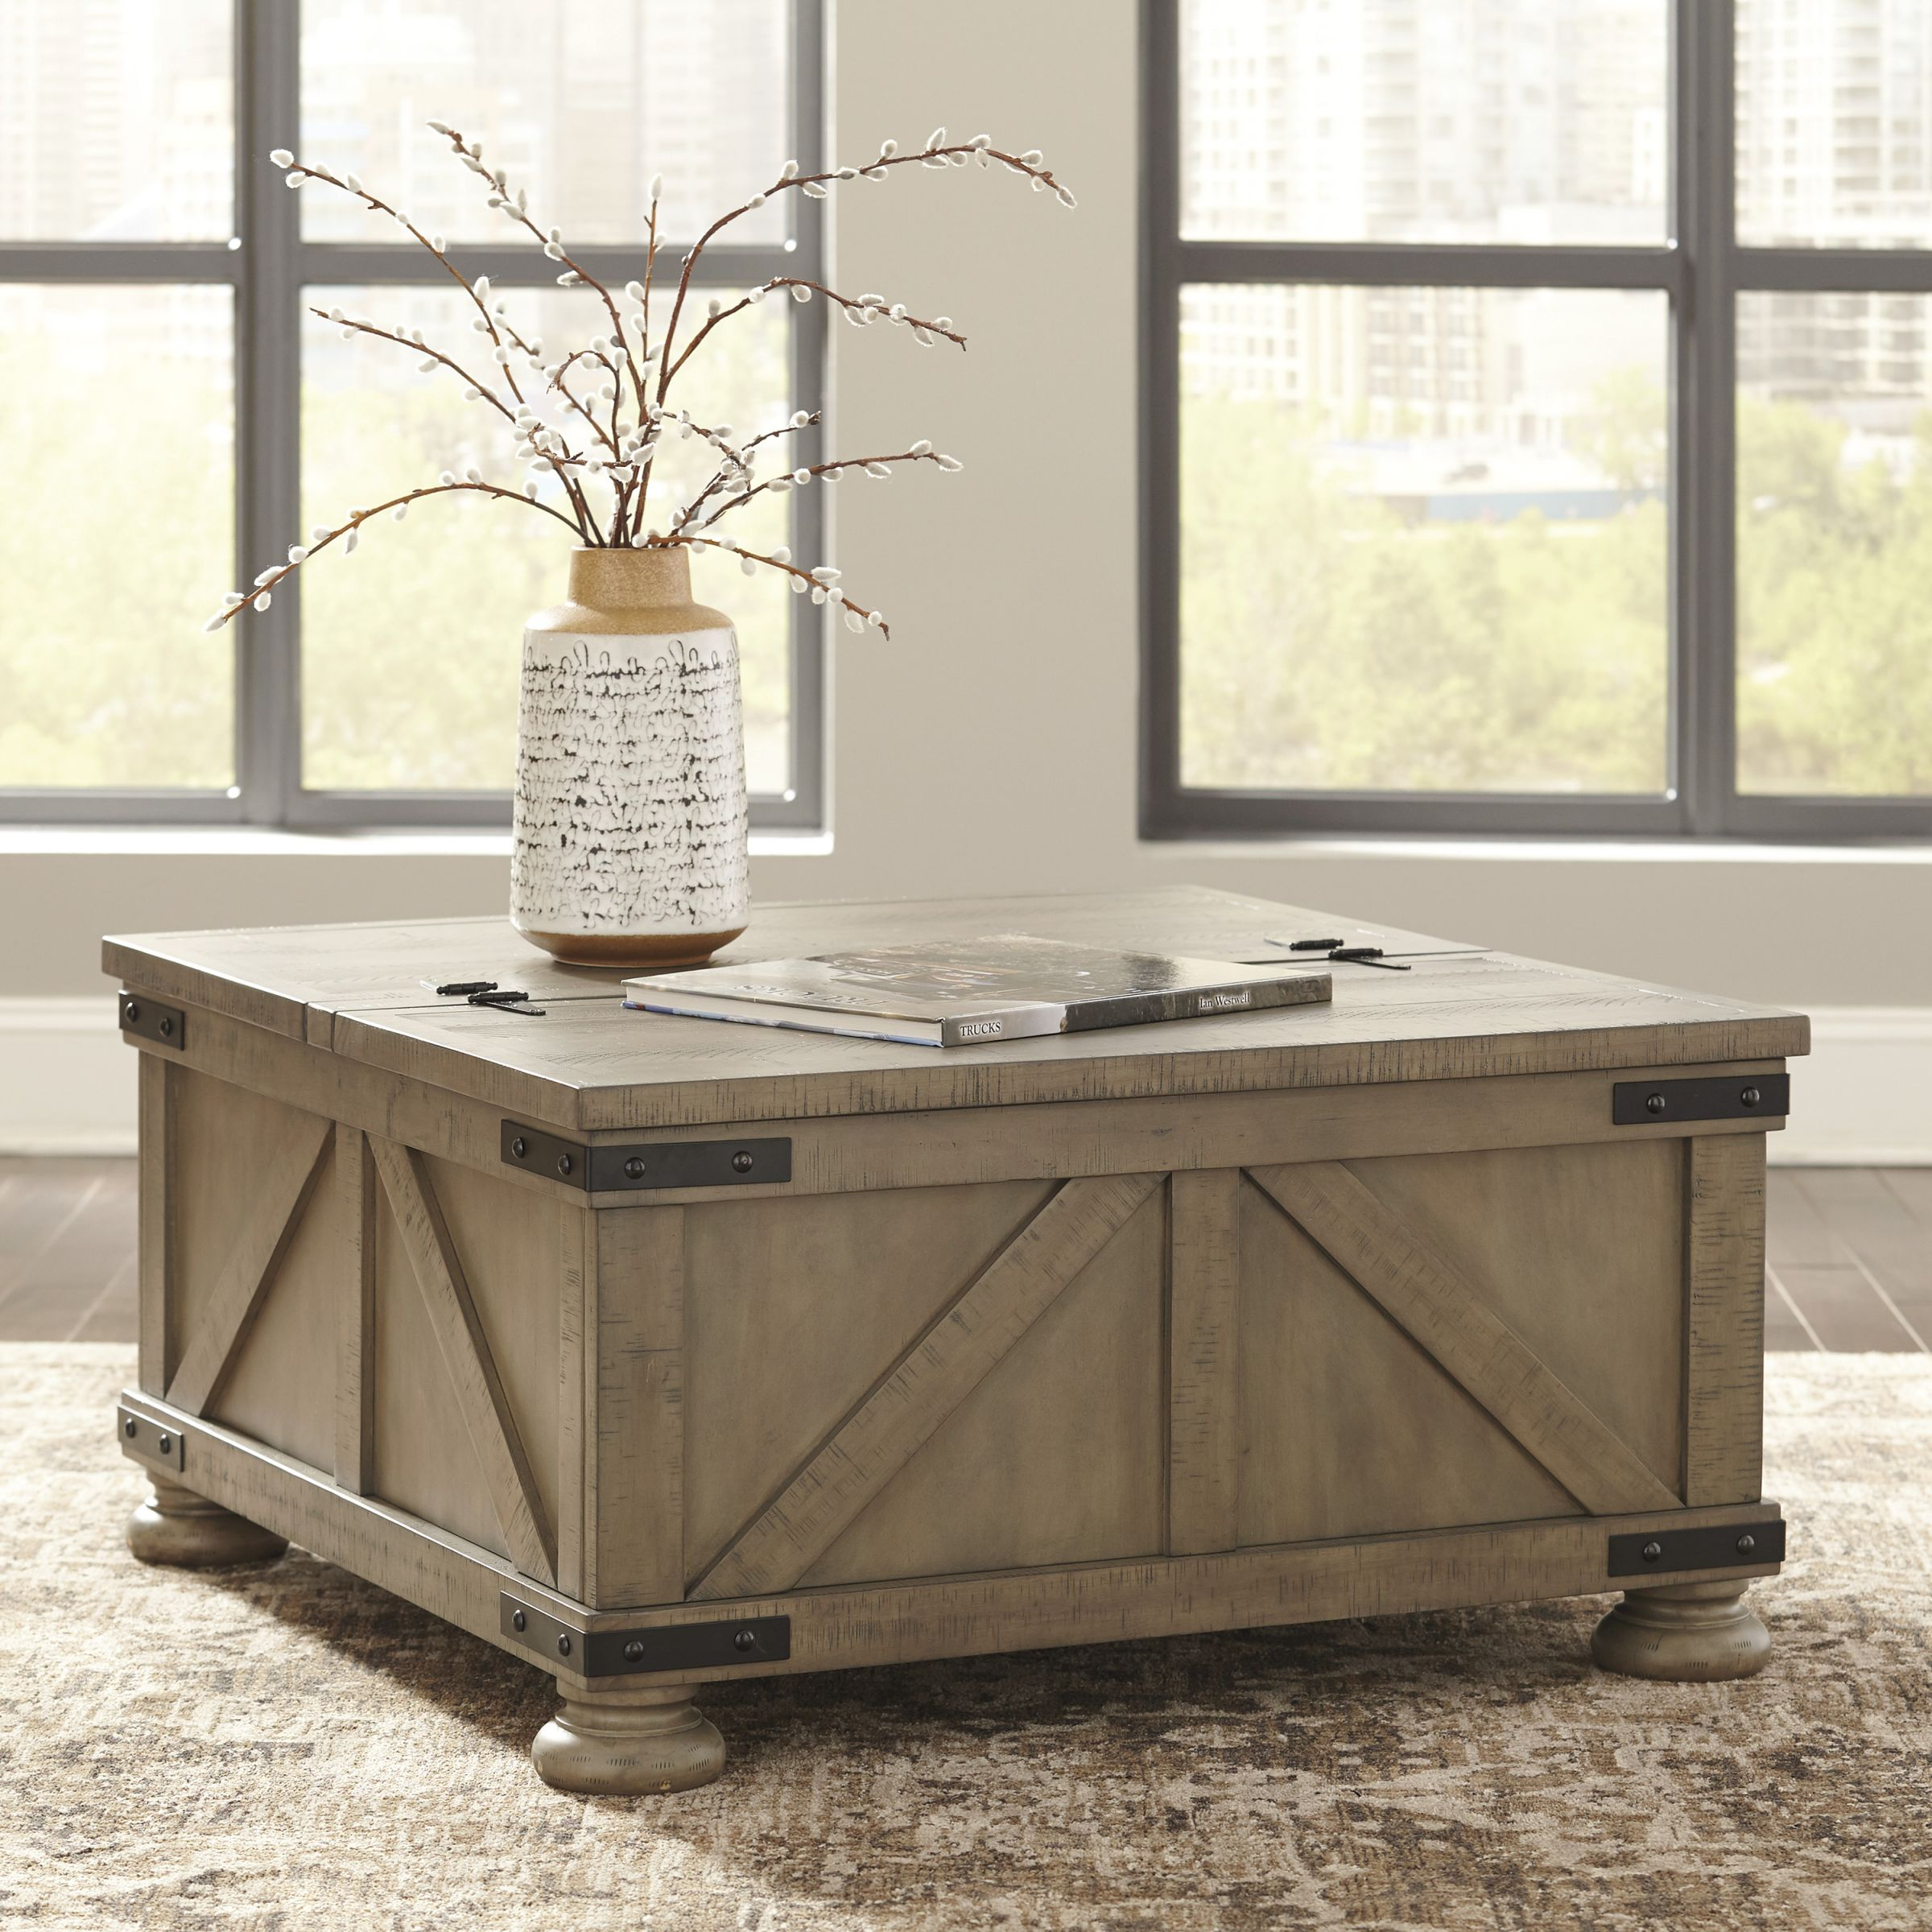 Aldwin Cocktail Table With Storage-Gray inside Square Coffee Table With Storage